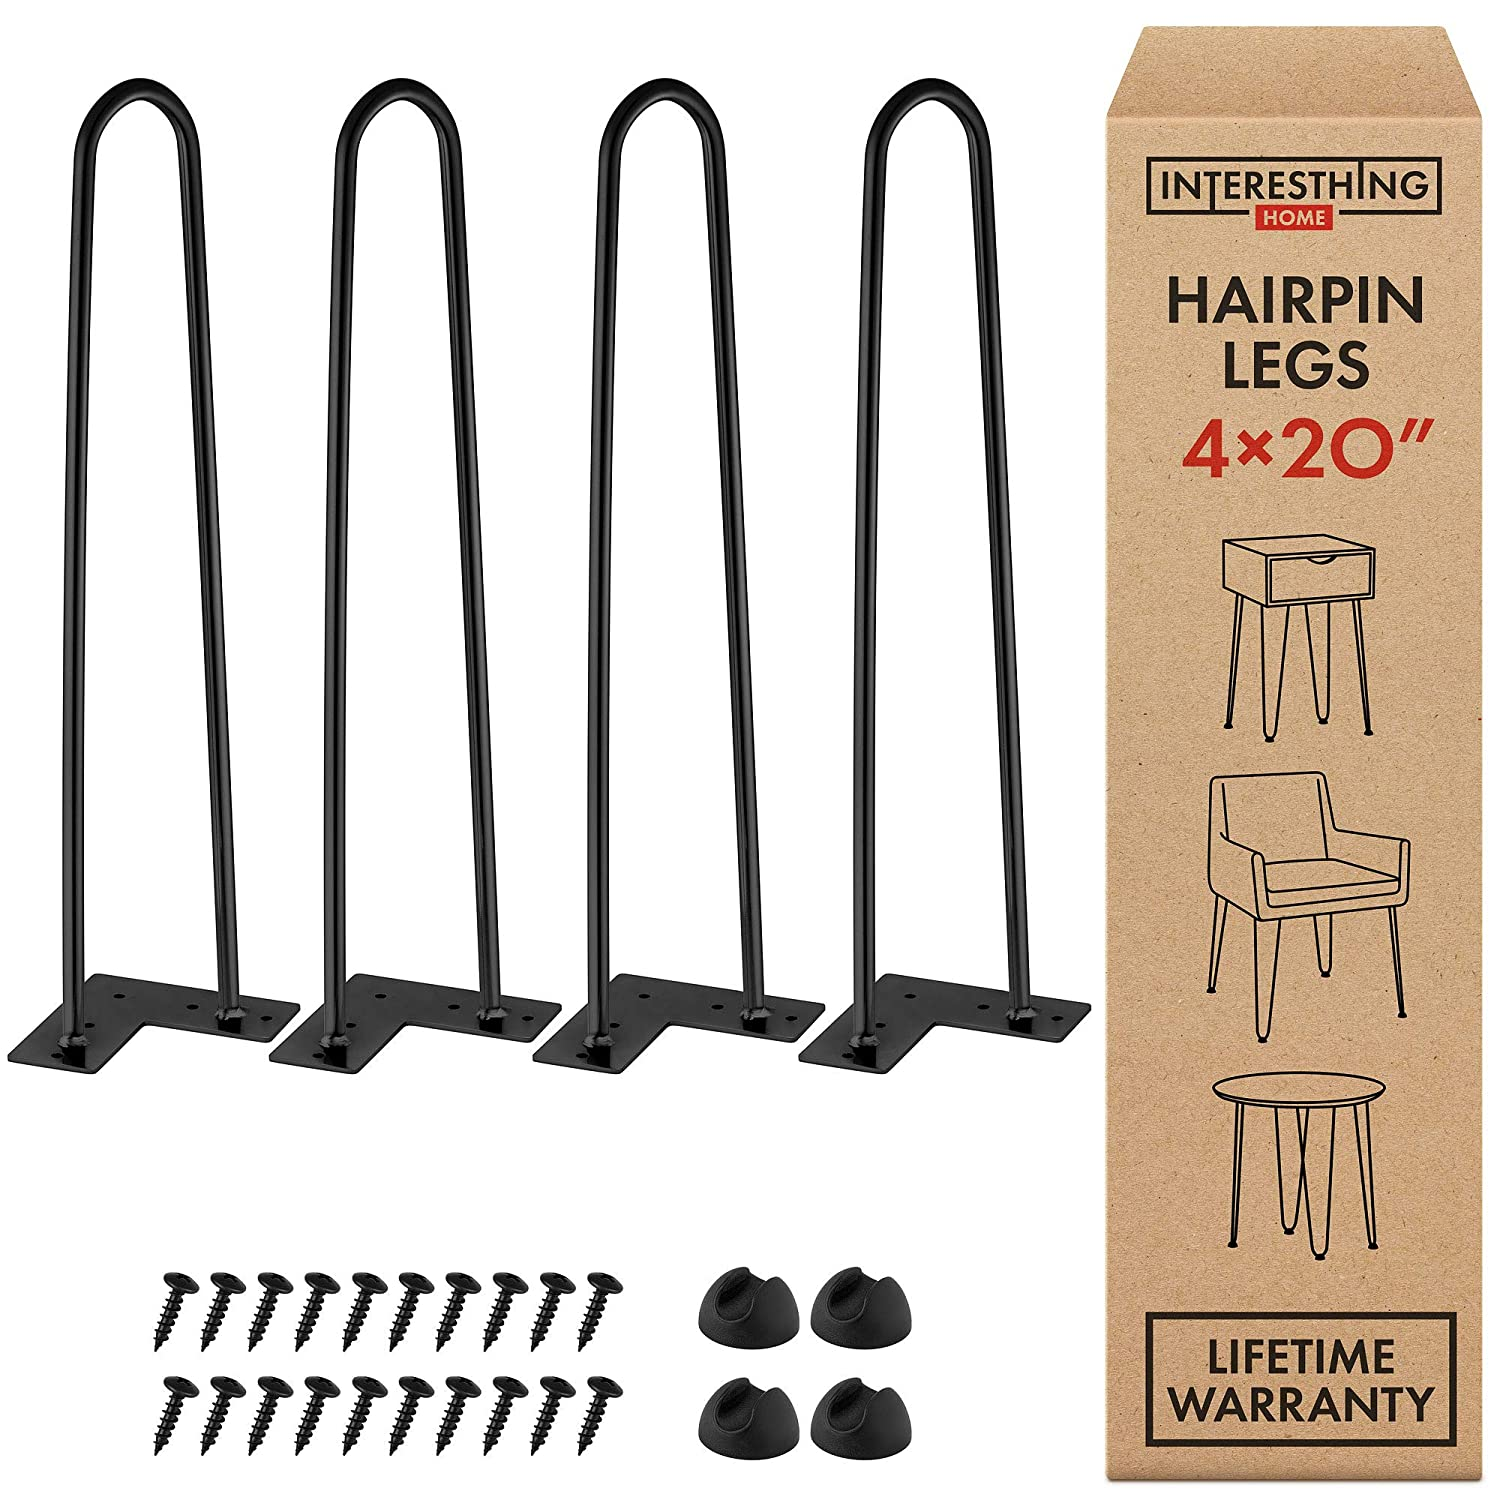 "20 Inch Heavy Duty Metal Coffee Table Legs with Screws and Hairpin Leg Protector Included - 4 Piece Set - Pre-Drilled Holes for Easy Installation - Add Mid Century Modern Flair to Your Home (20"")"